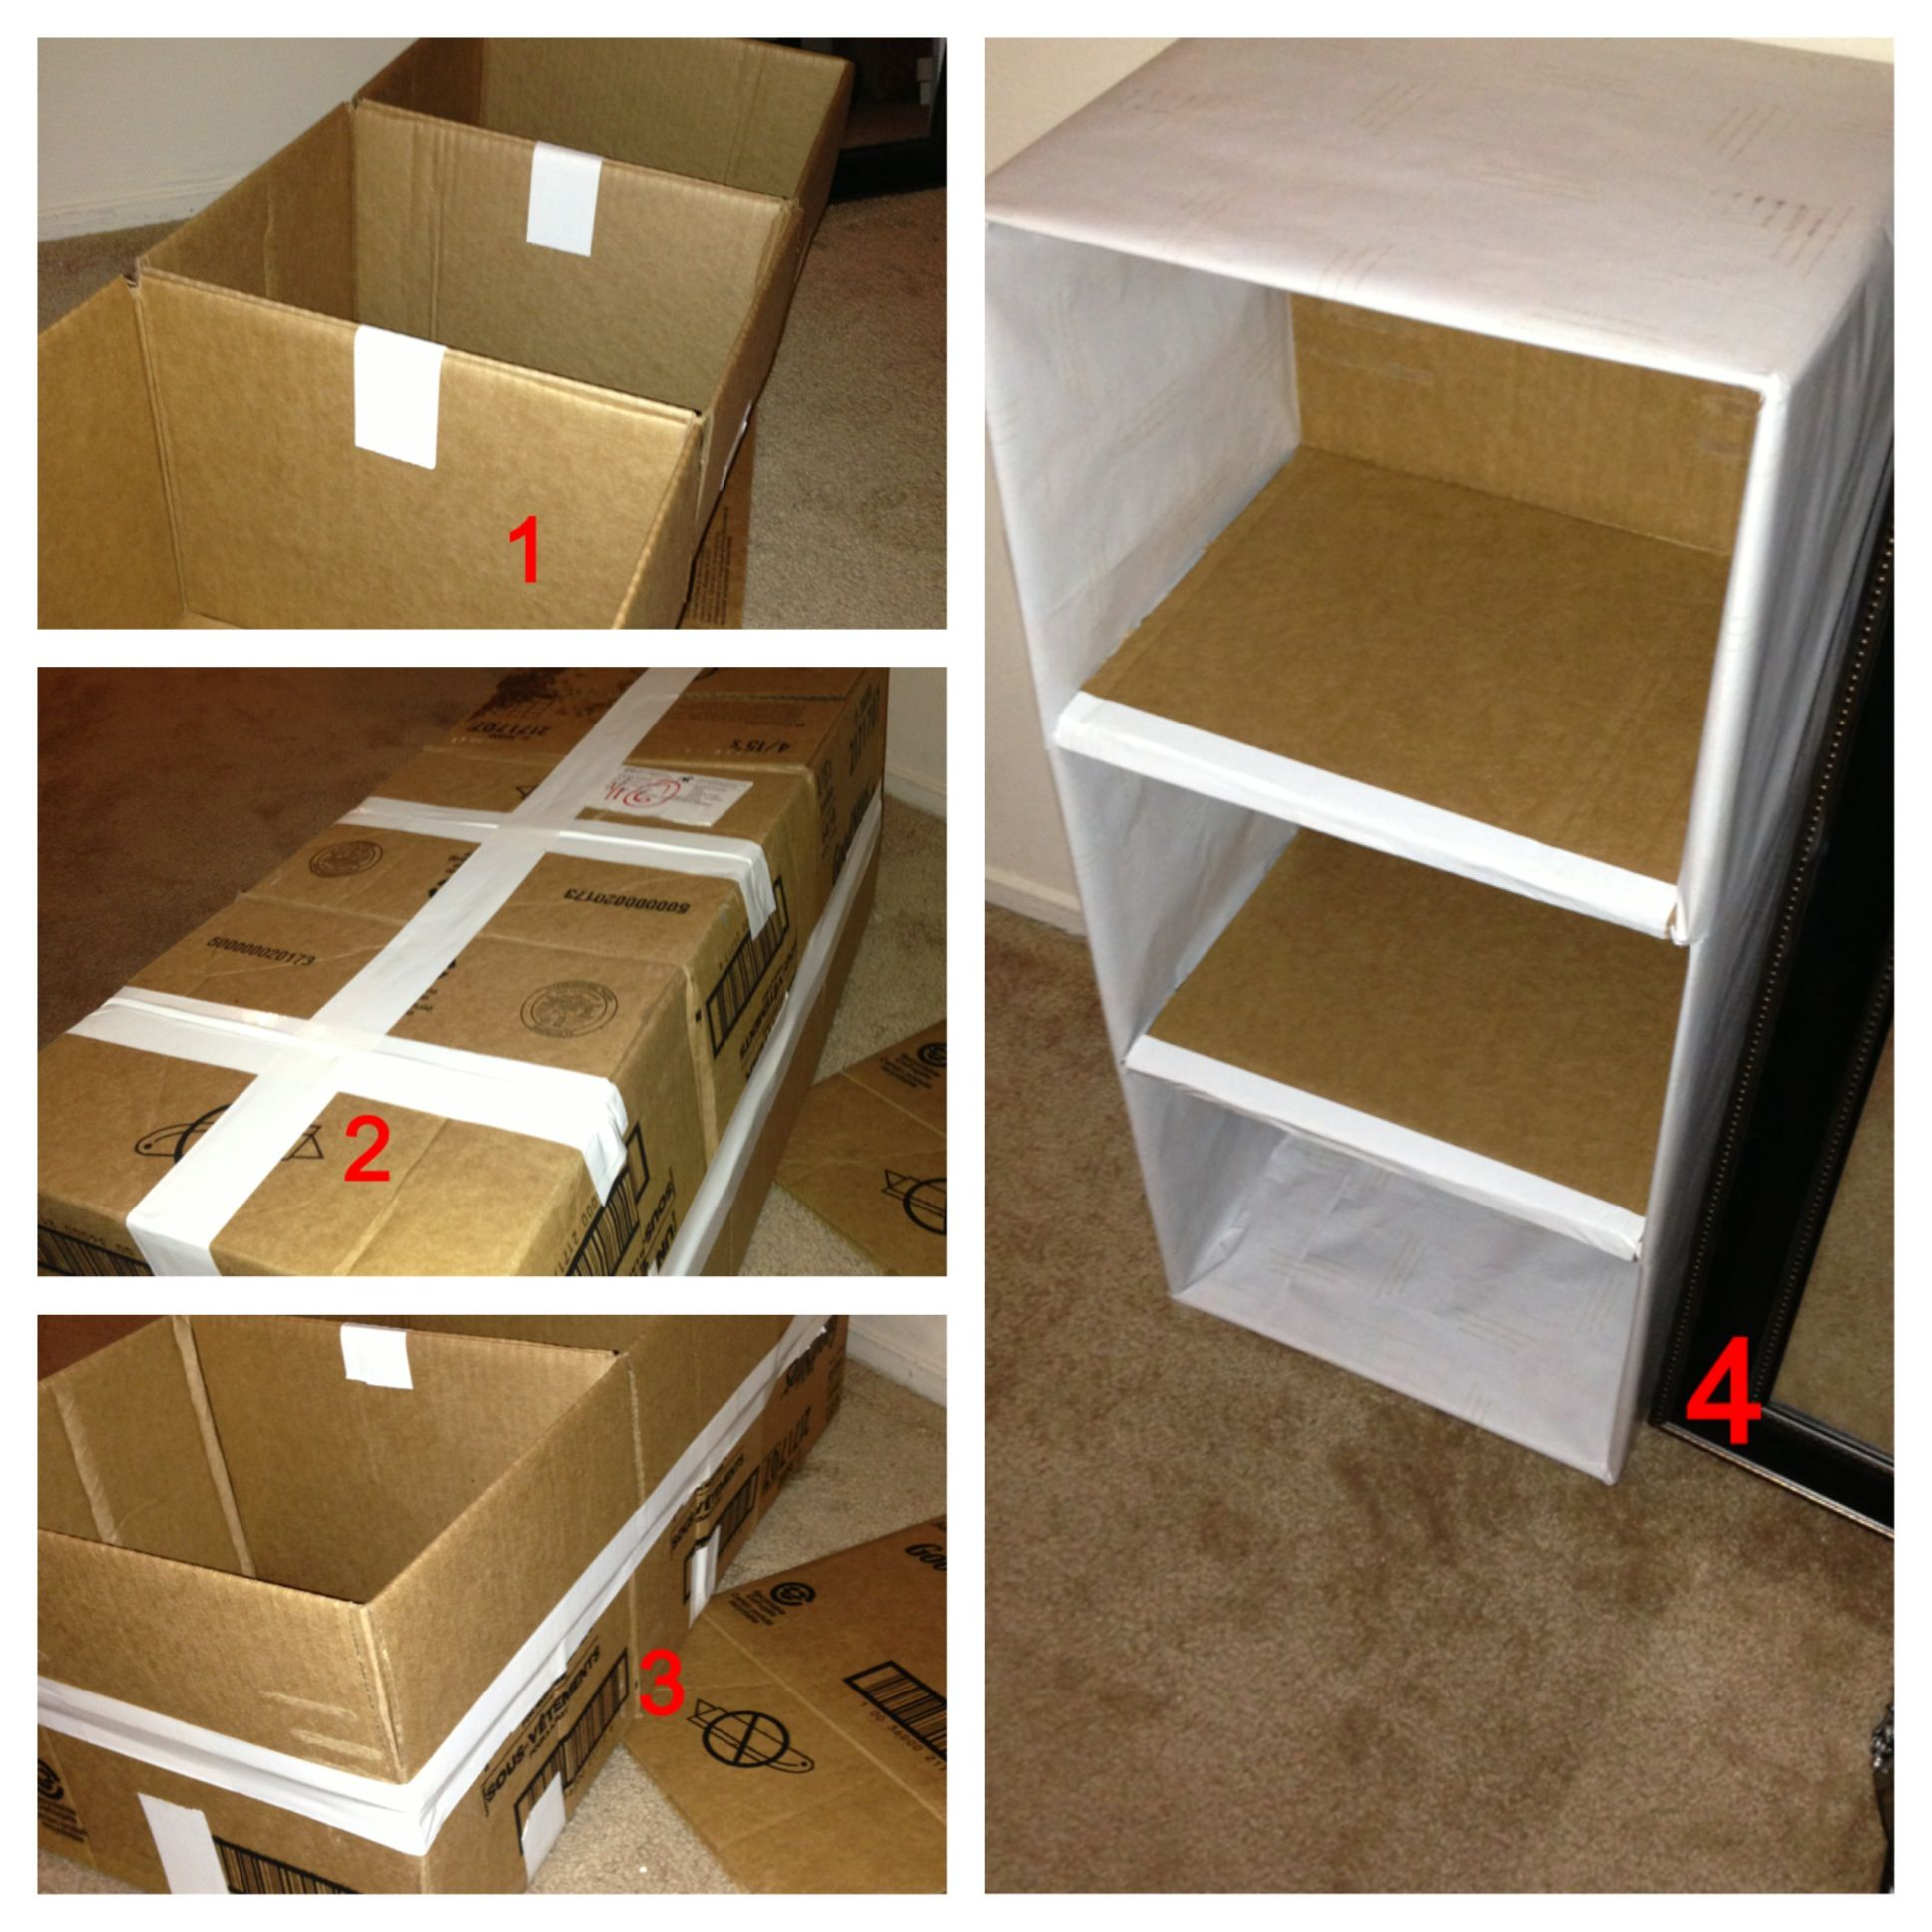 Gentil DIY 3 Tier Shelf From Cardboard Boxes!